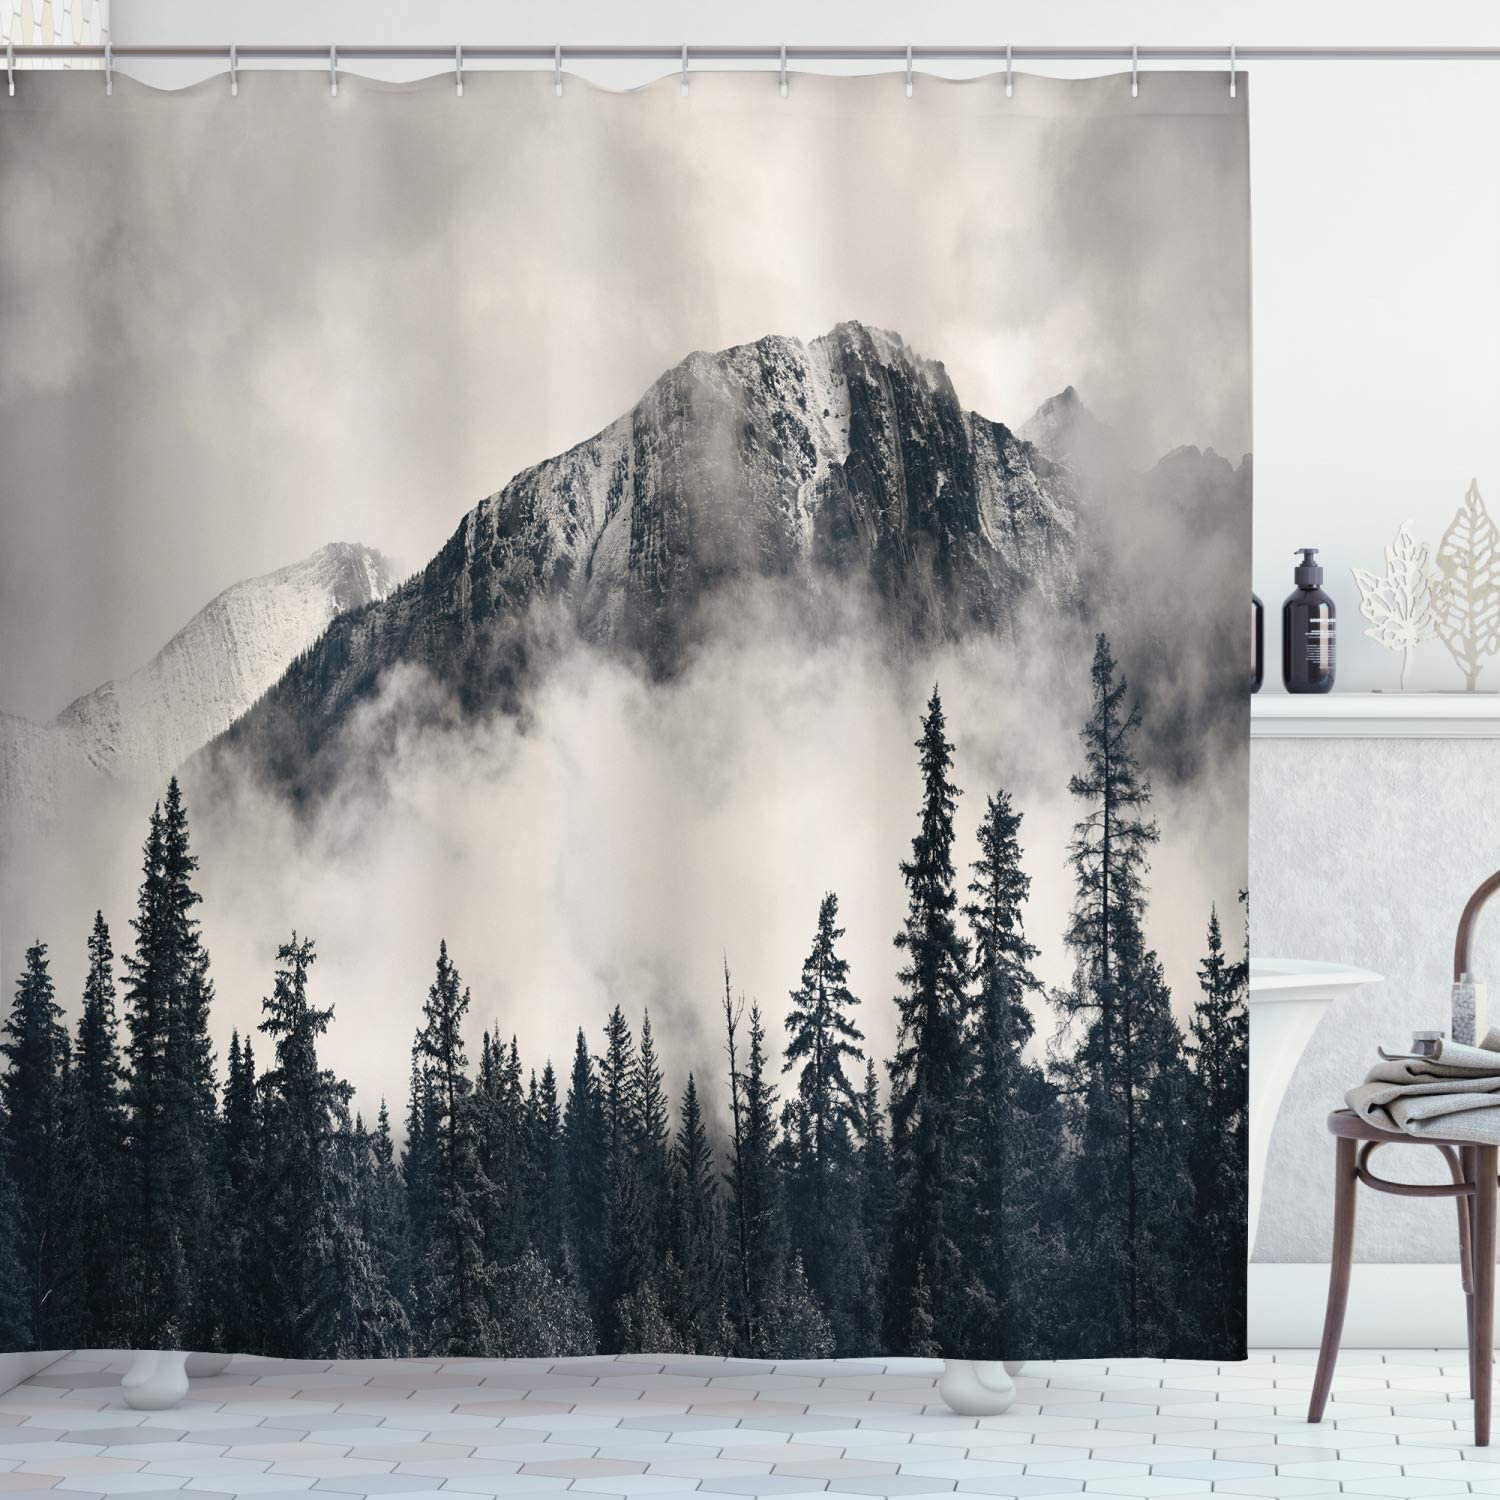 Ambesonne National Parks Shower Curtain Canadian Smokey Mountain Cliff Outdoors Idyllic Scenery Photo Artwork Cloth Fabric Bathroom Decor Set With Hooks 70 Long Black White Home Kitchen